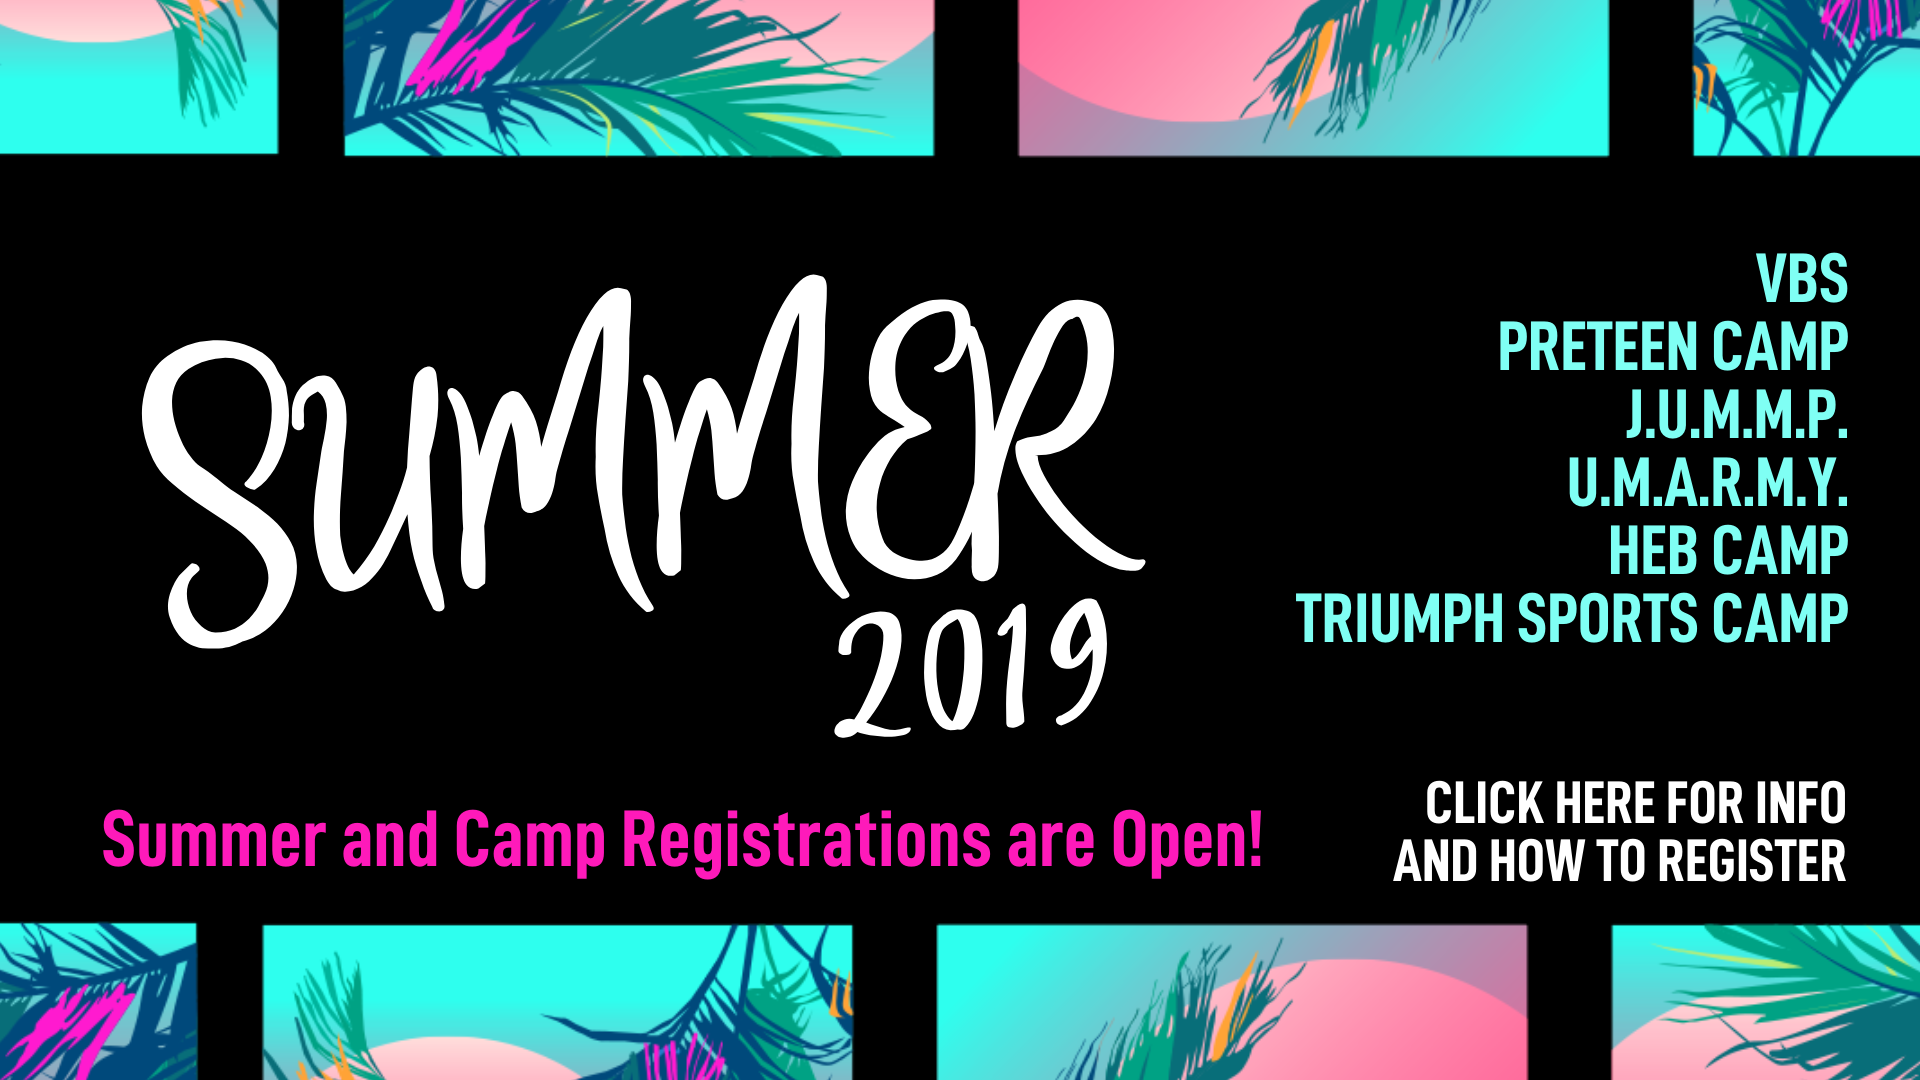 Summer 2019 - For more info on any of these opportunities, please CLICK HERE to see our Summer 2019 page.VACATION BIBLE SCHOOL | June 17-21 | 9AM-NoonATTEND Kids age 4 (by September 1st) through students entering 6th GradeSERVE Completed 6th grade students through adults To register for VBS, please CLICK HERE.Triumph Sports Camp | August 5-8 | Ages 5-12There are 3 options for Triumph Sports Camp: a morning option, an afternoon option and a full day option by signing up for both morning and afternoon sessions. If you sign up for both sessions (AM and PM), you can drop off at 9:00 AM and pick up at 3:30 PM. Triumph staff will have lunch with your child from 12:00 PM-12:30 PM. Make sure to pack a sack lunch though!To register for Triumph Sports Camp, please CLICK HERE.